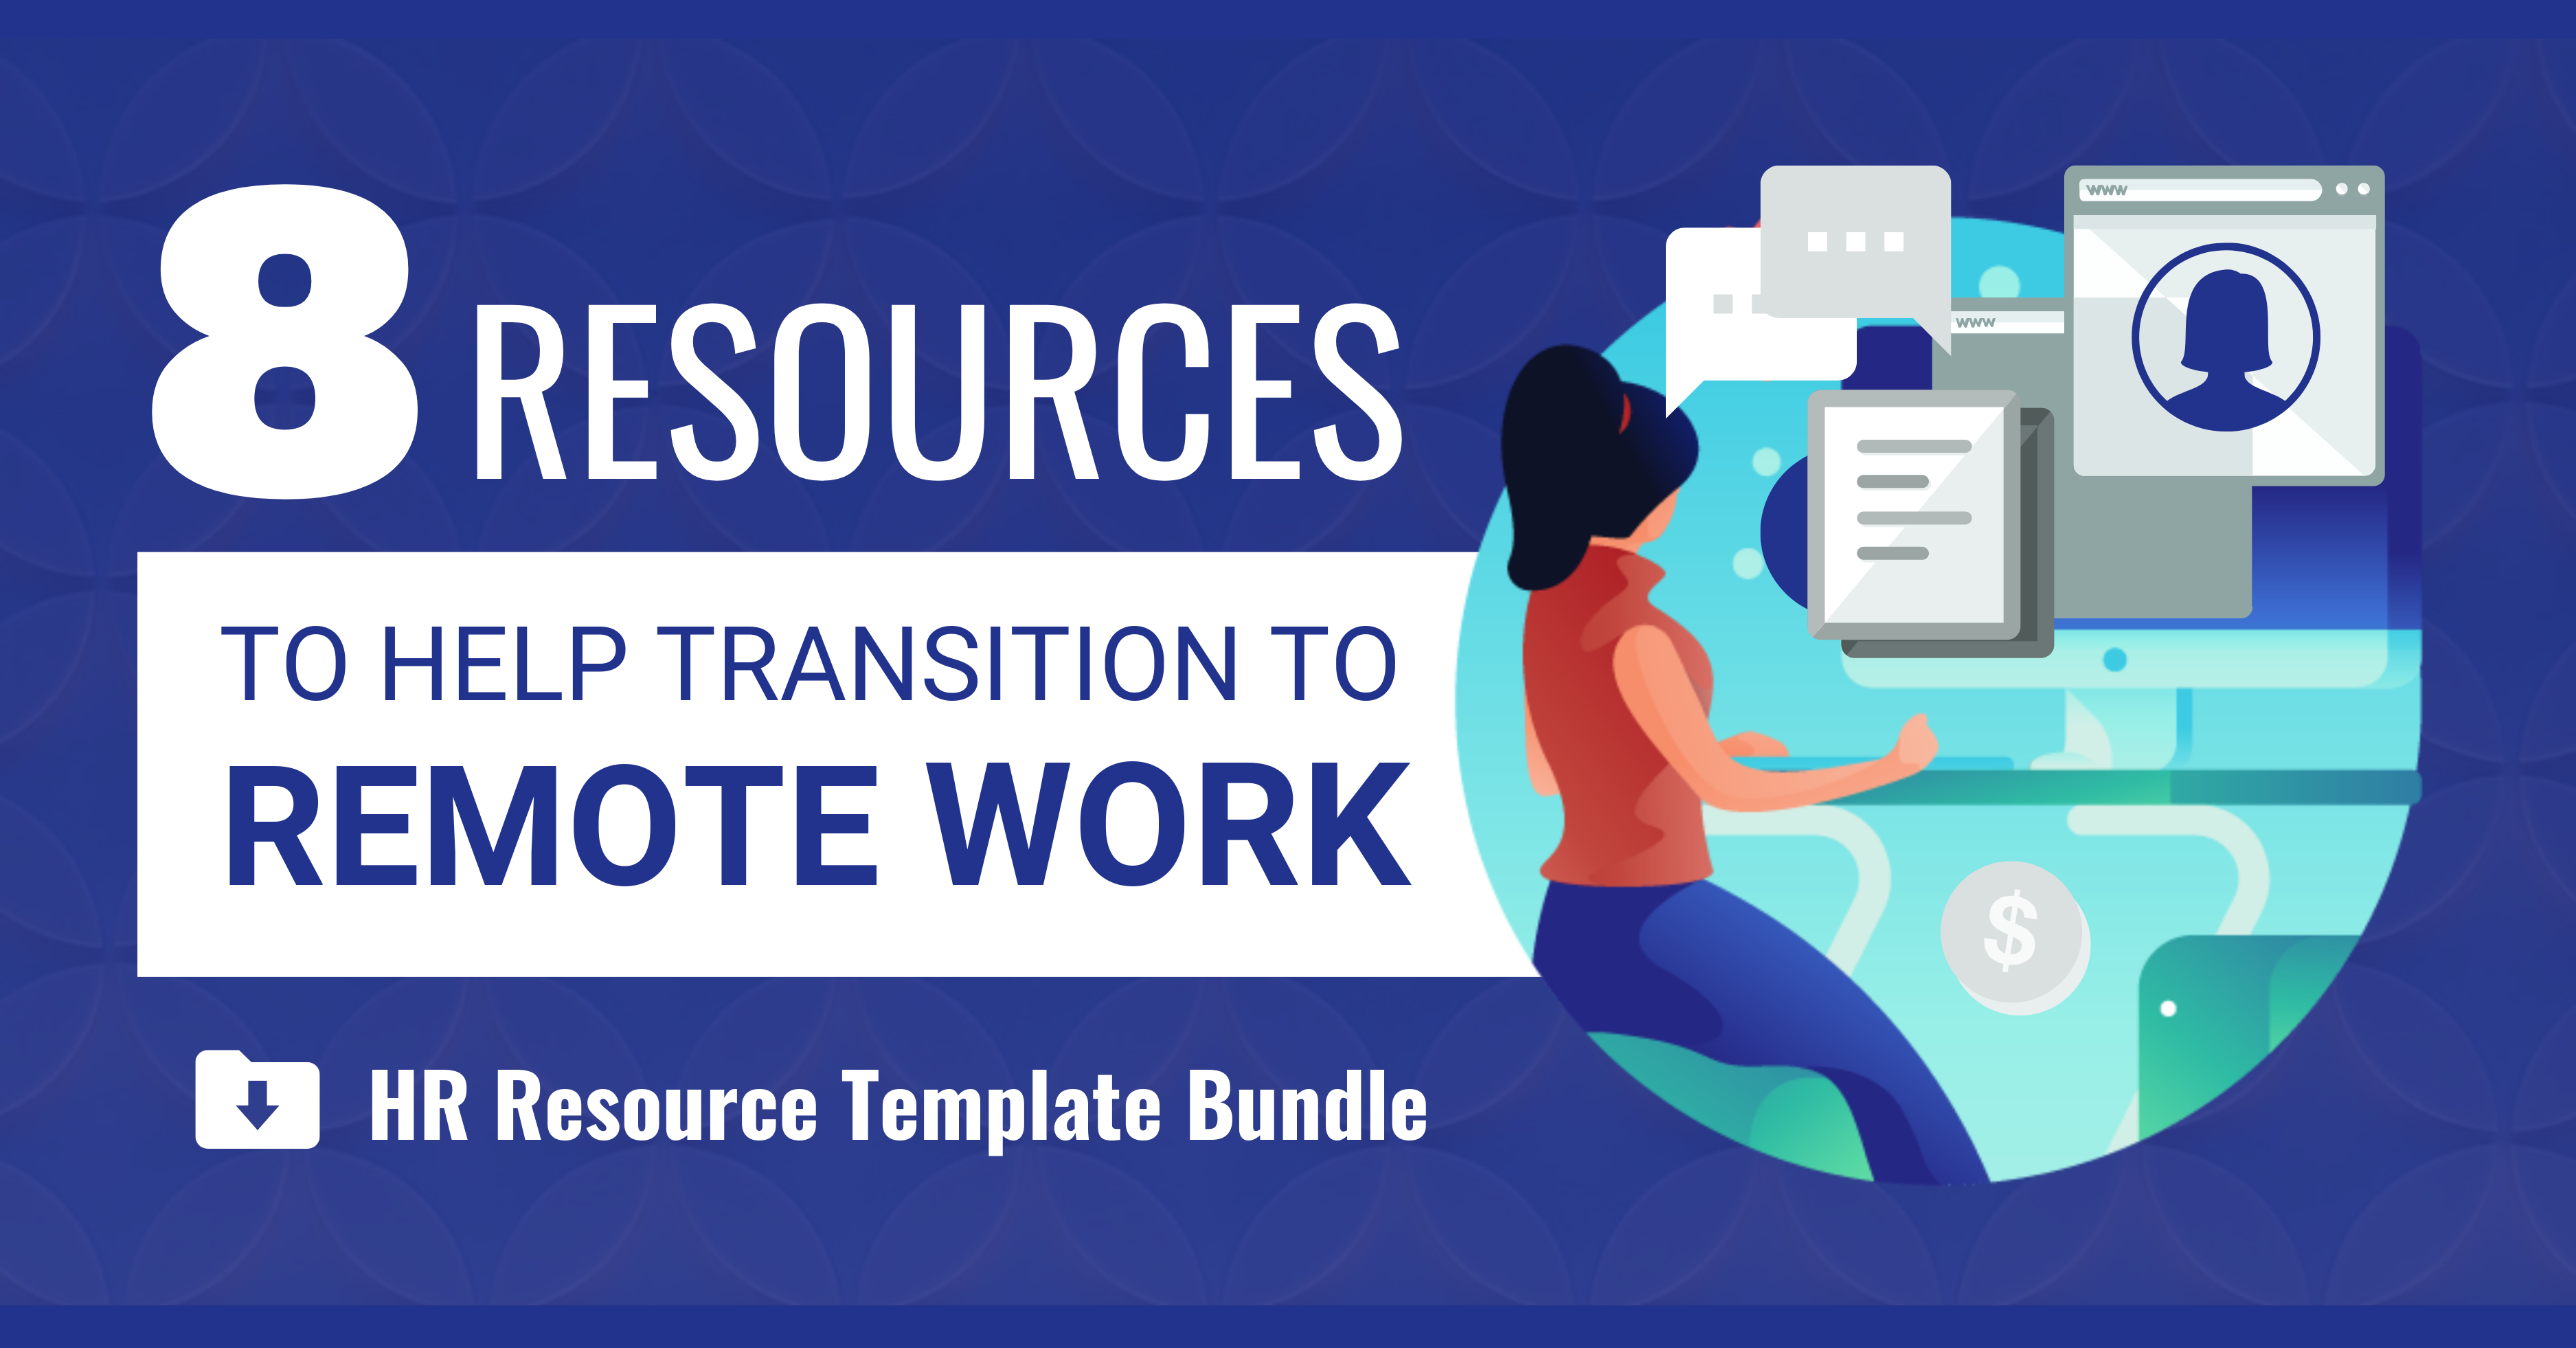 8 Resources to Help Transition to Remote Work